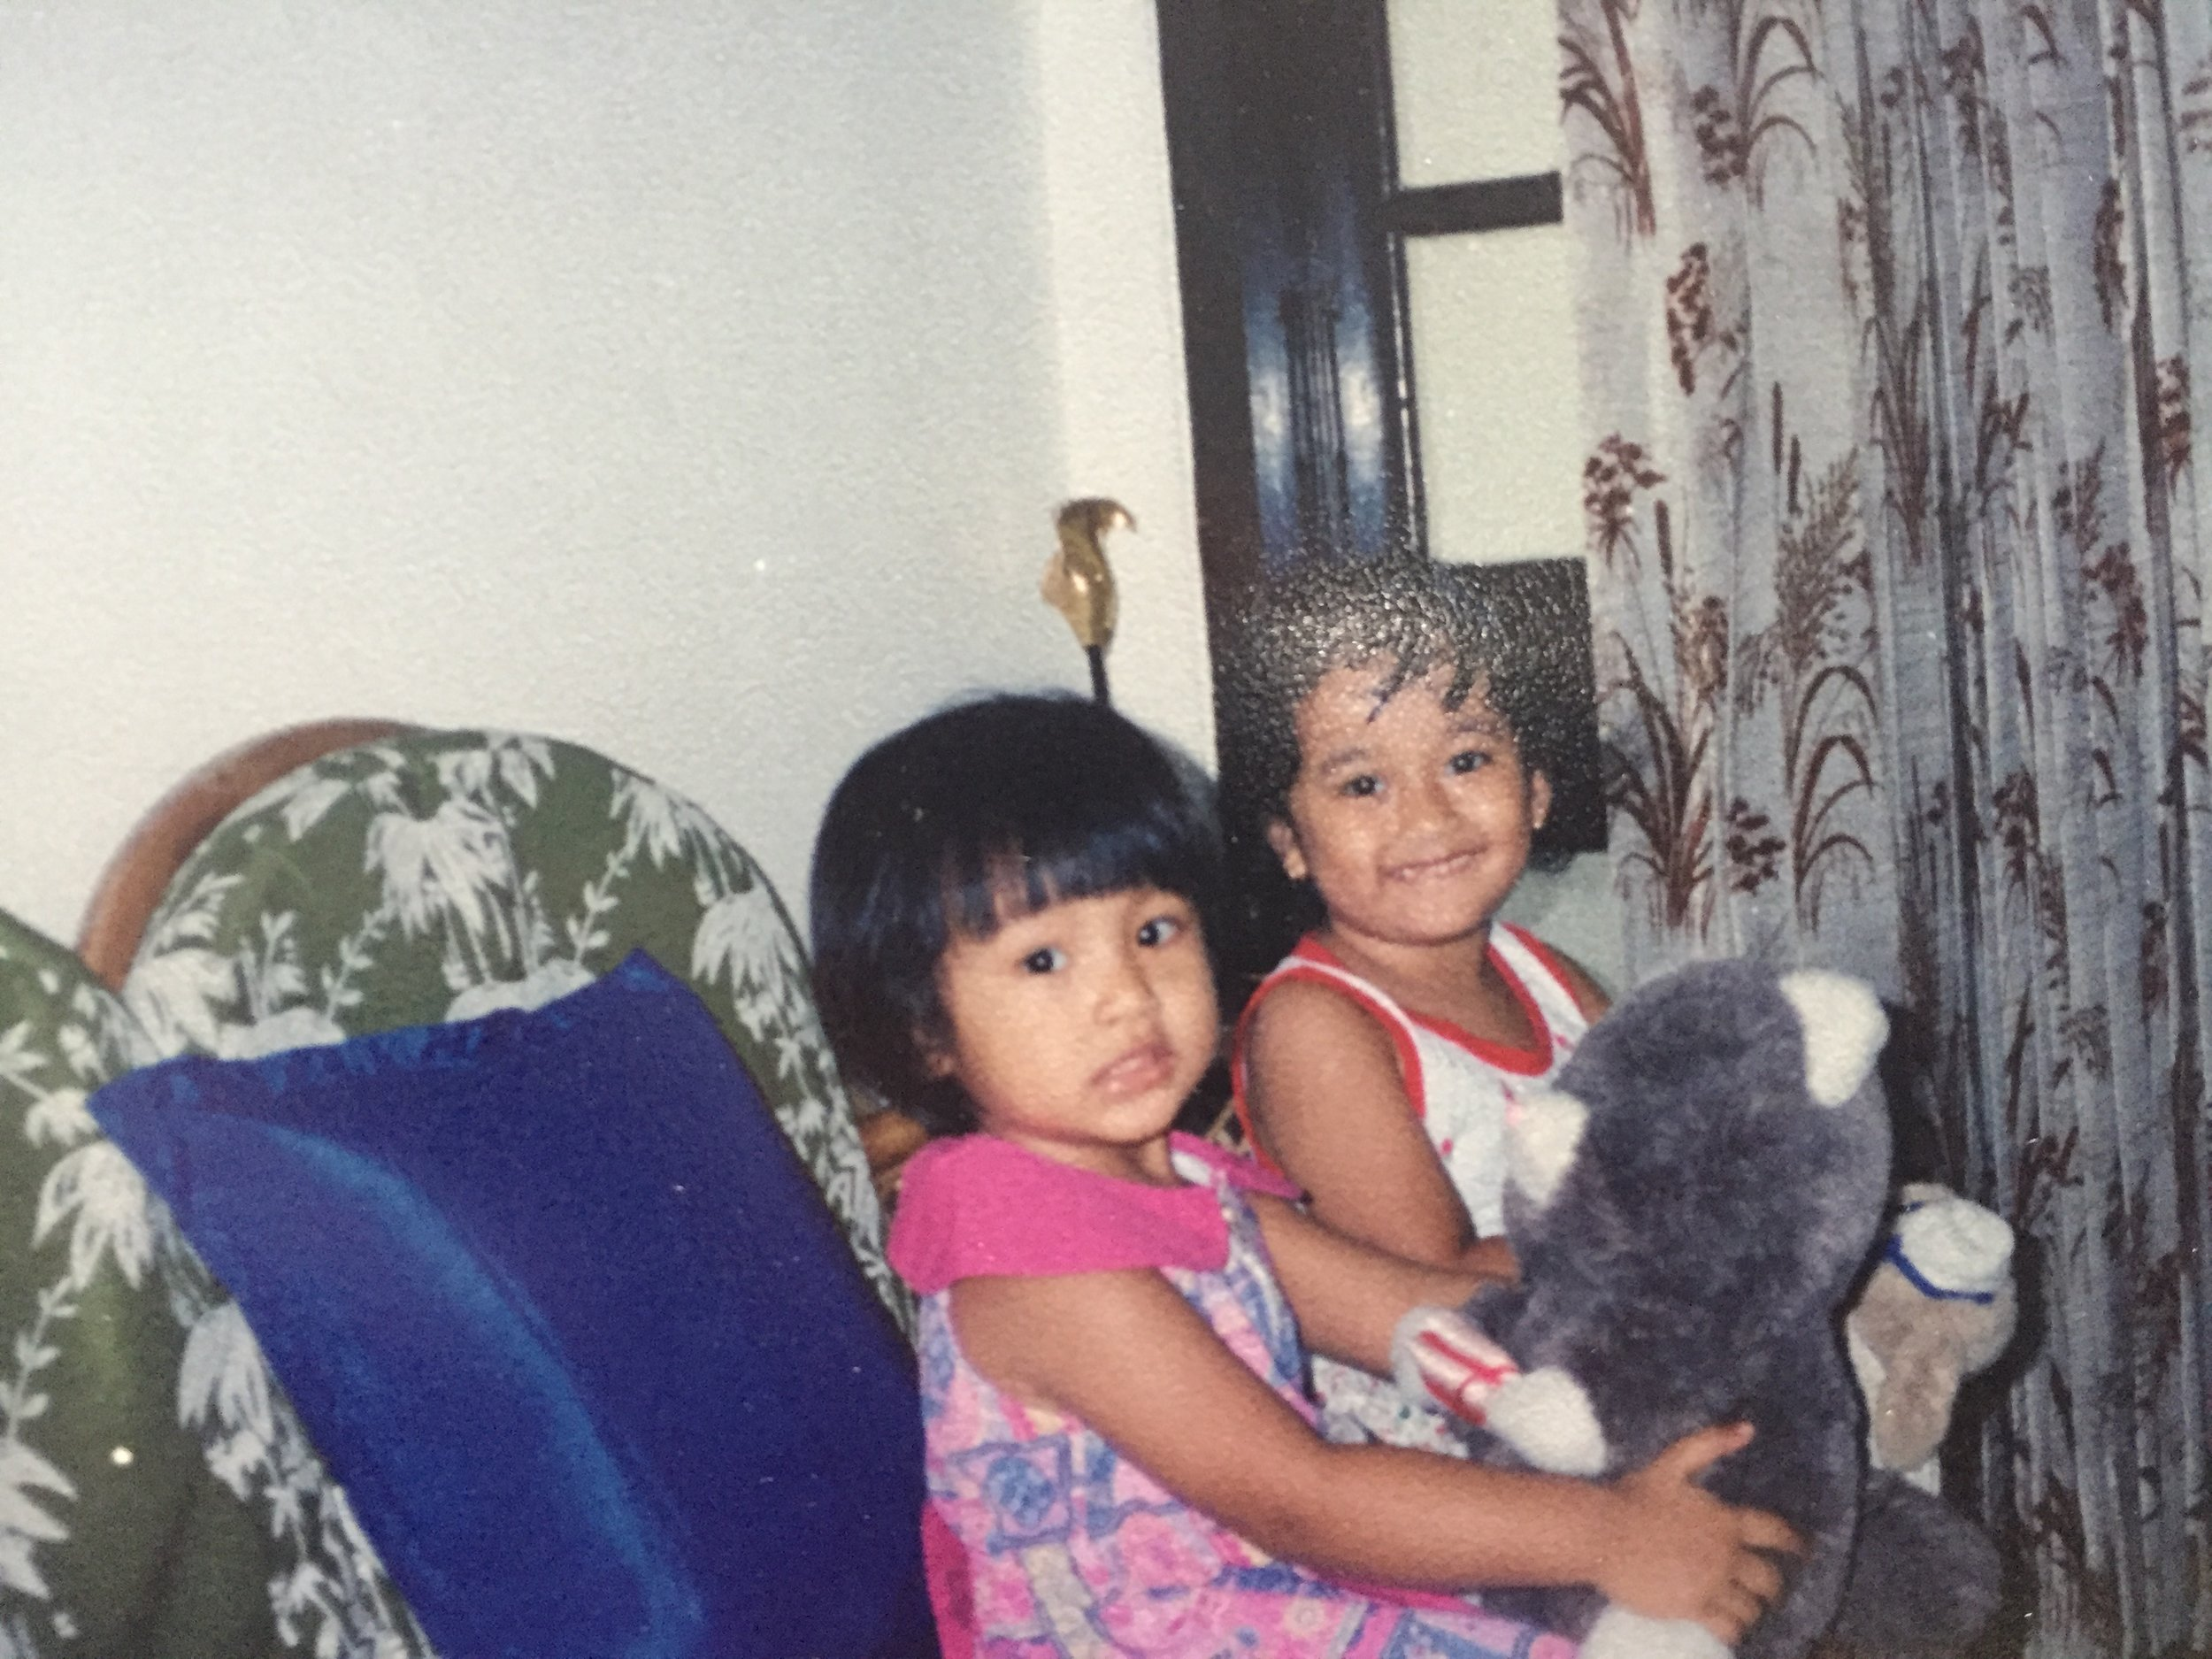 22 years ago with my cousin. I was so cute. Super kawaii. My face changed so much.